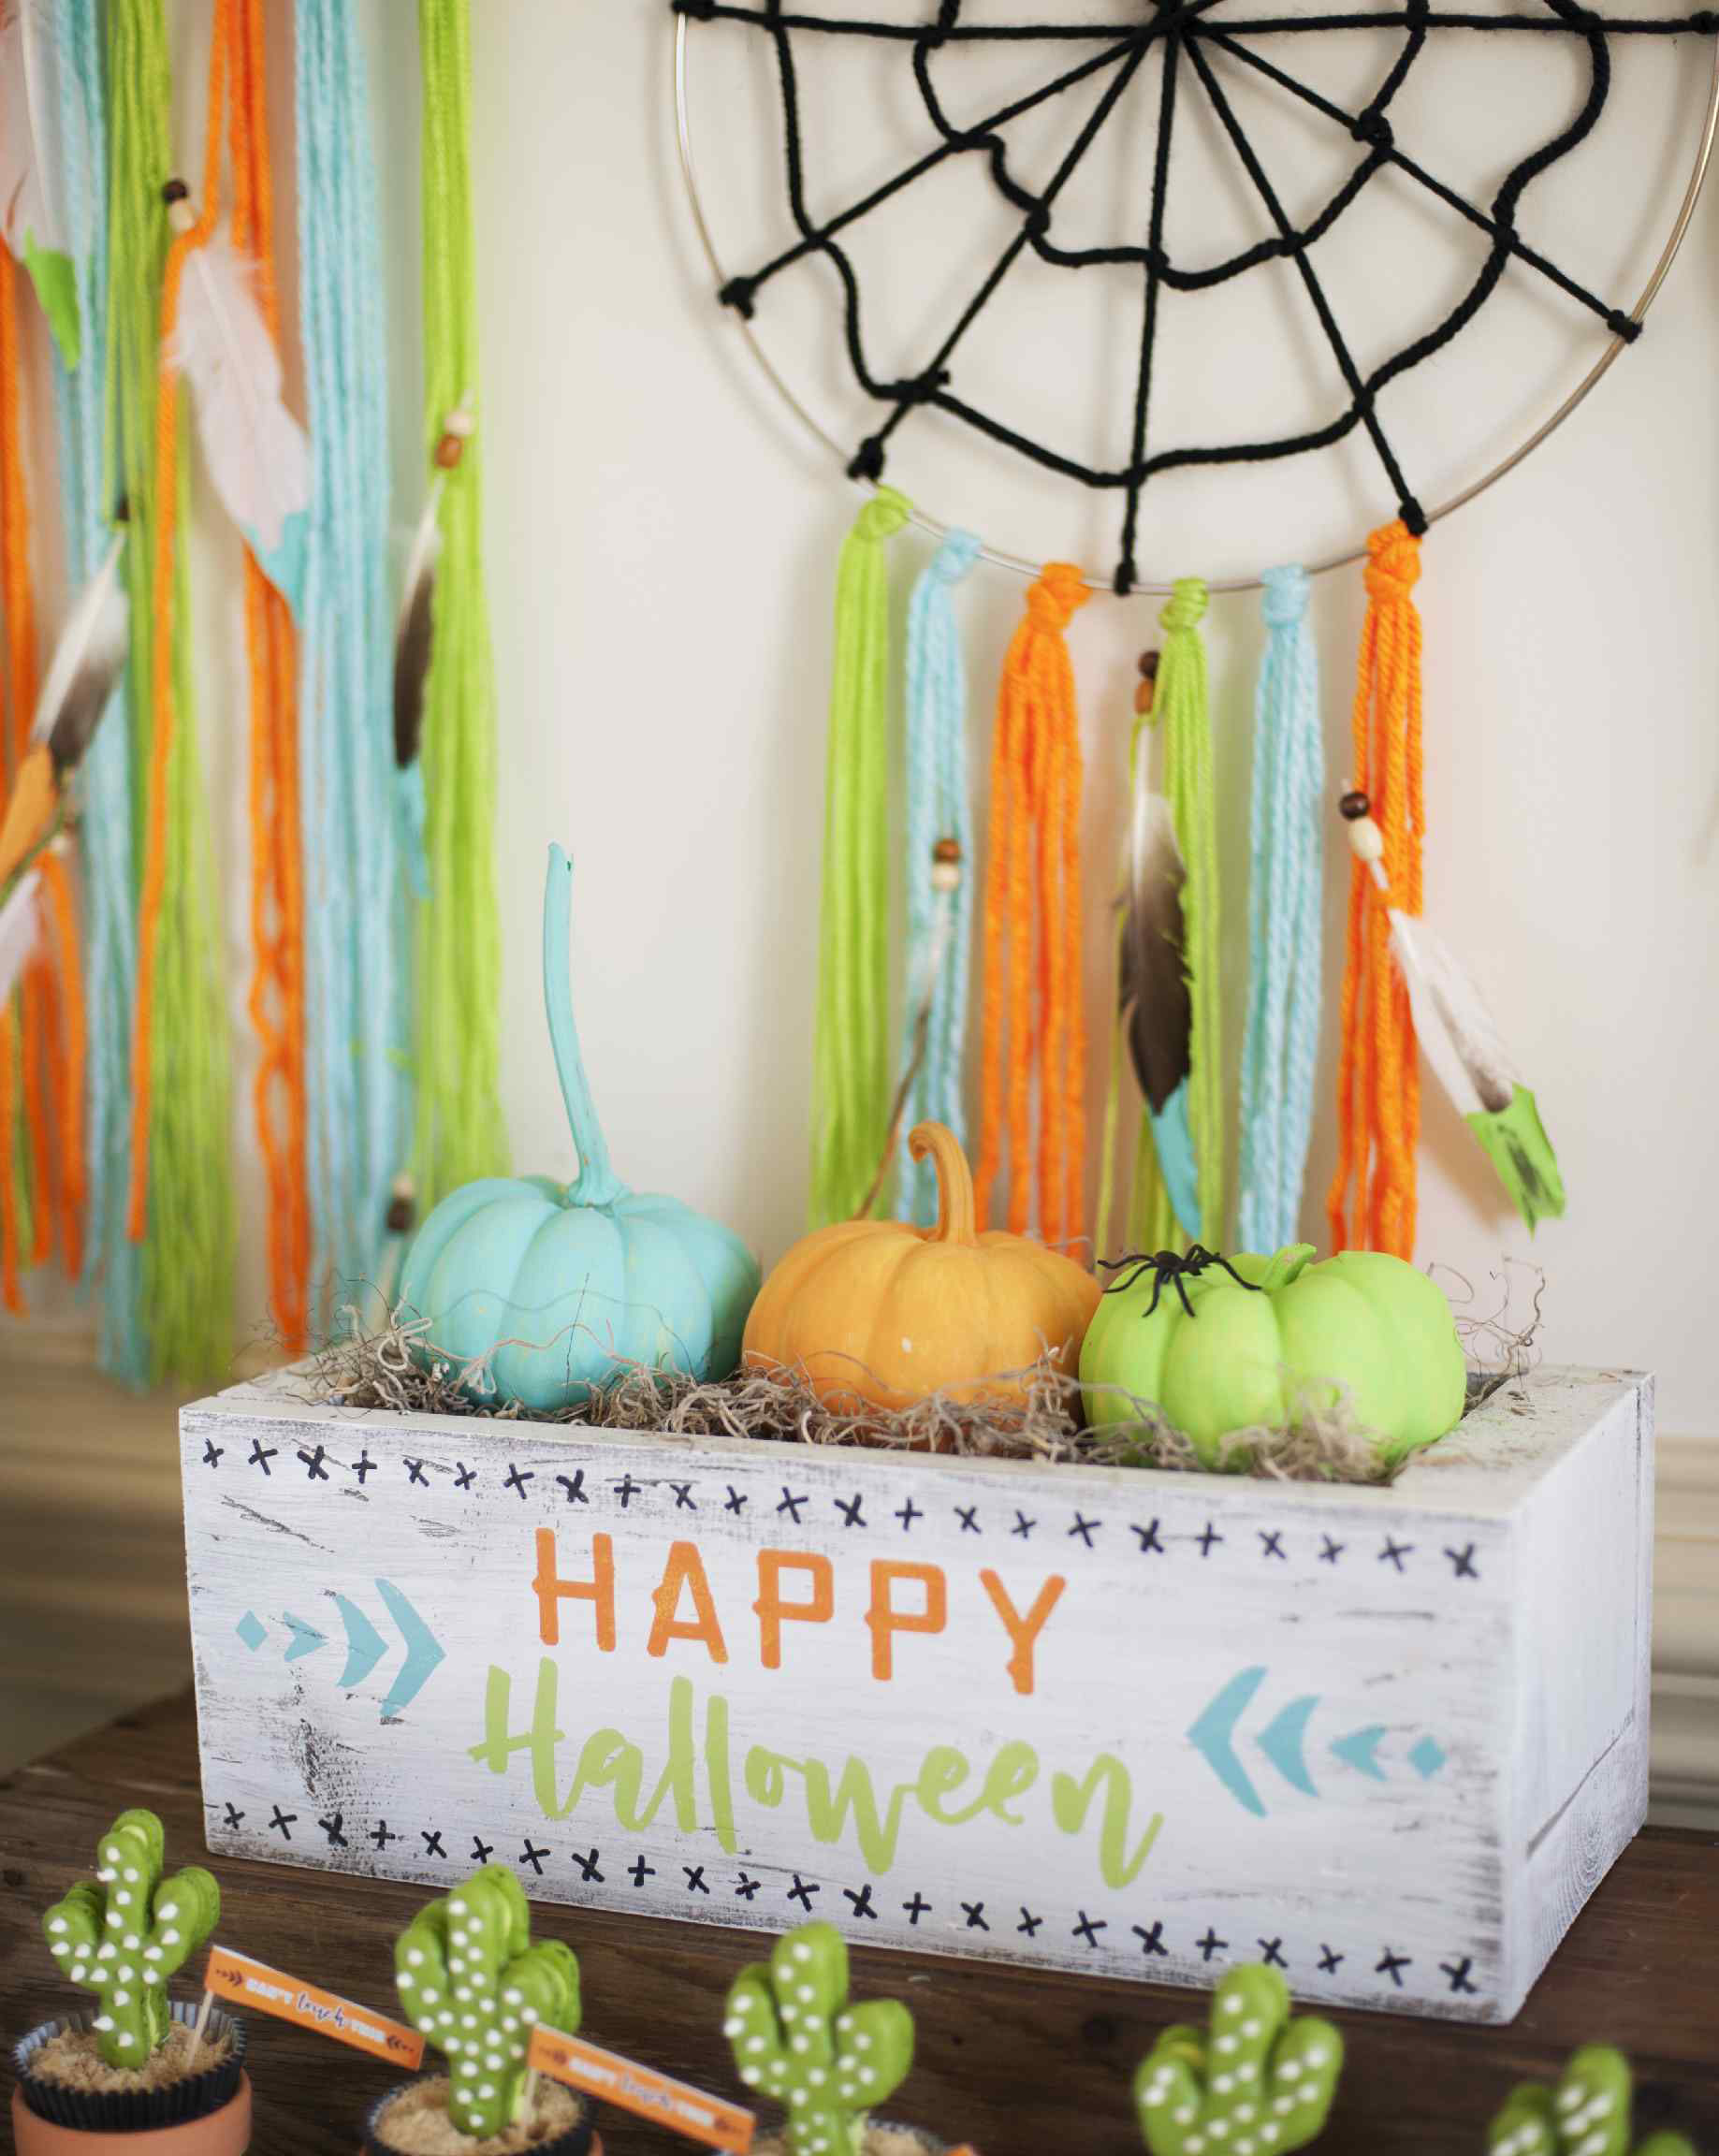 Halloween Deko Garten Diy 36 Insanely Cute Halloween Party Decorations You Can Make Today